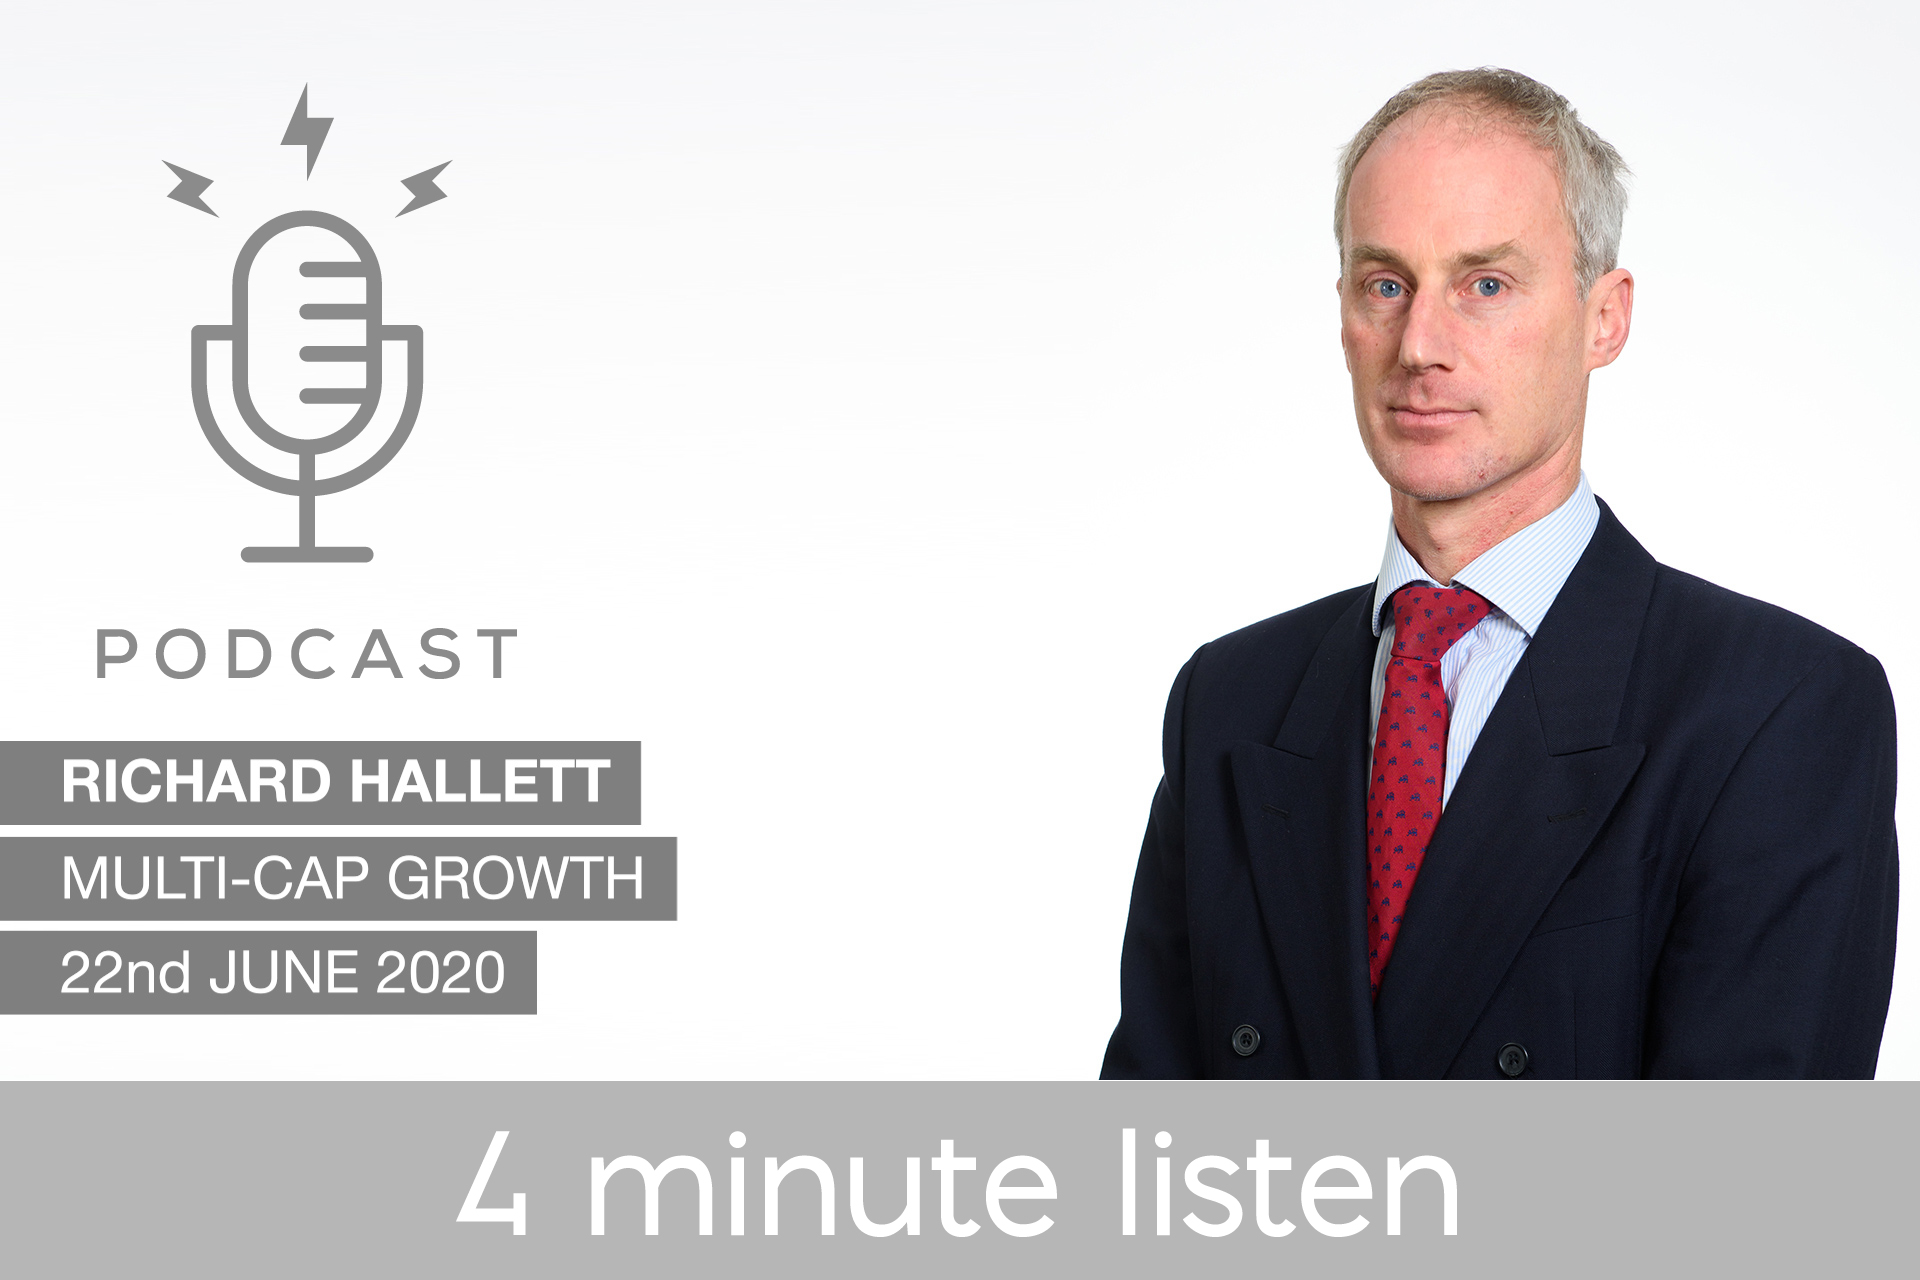 Richard Hallett Podcast